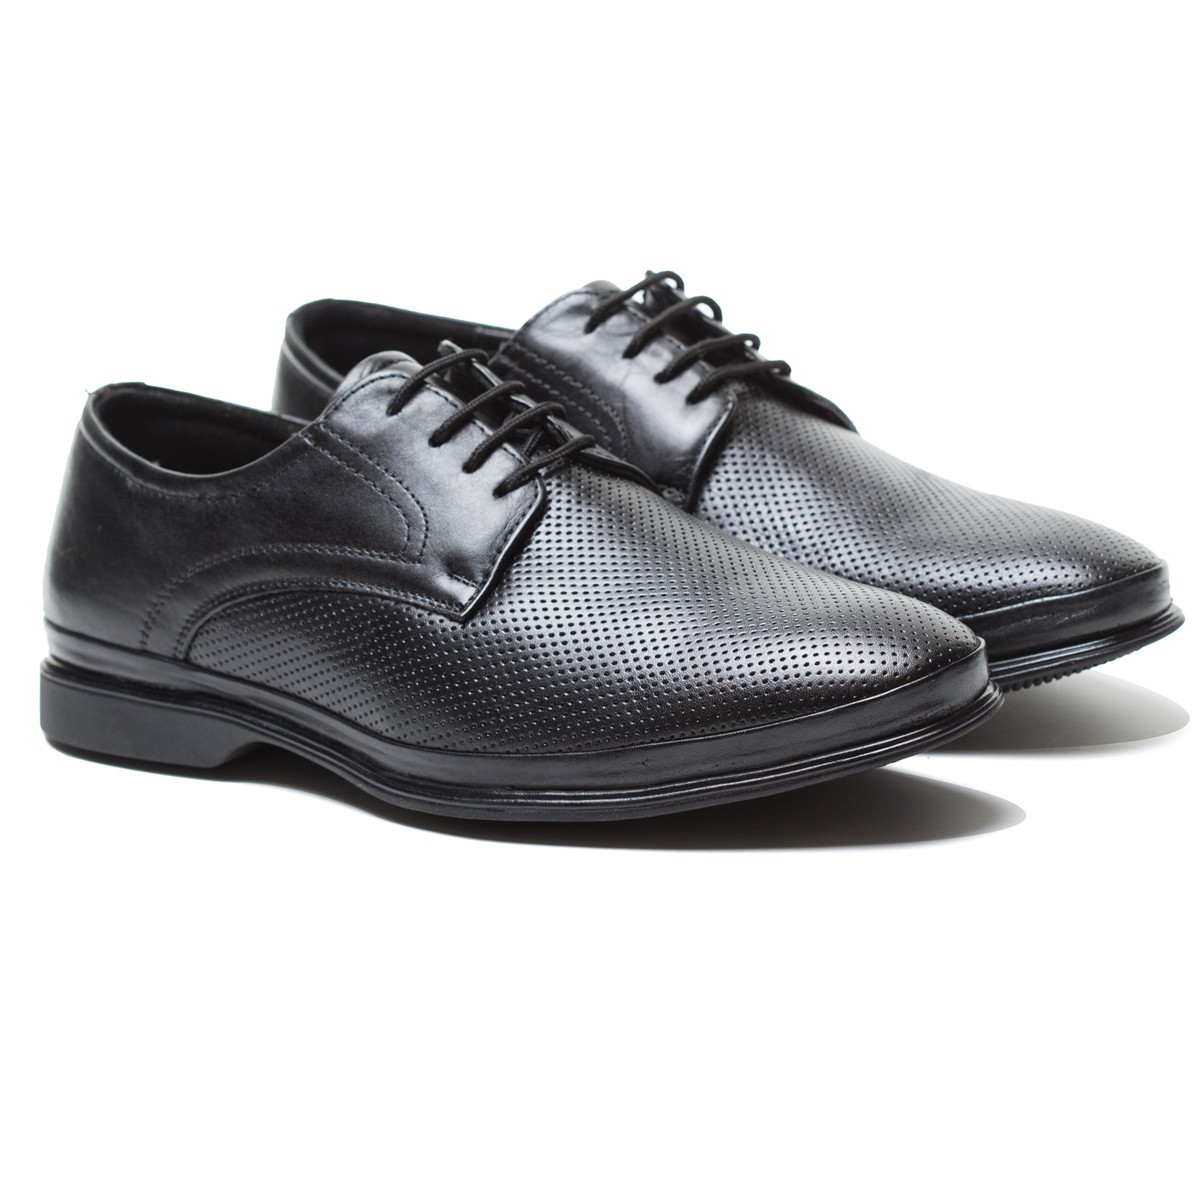 Buy Von Wellx Germany Comfort Coen Black Shoes Online in Riyadh